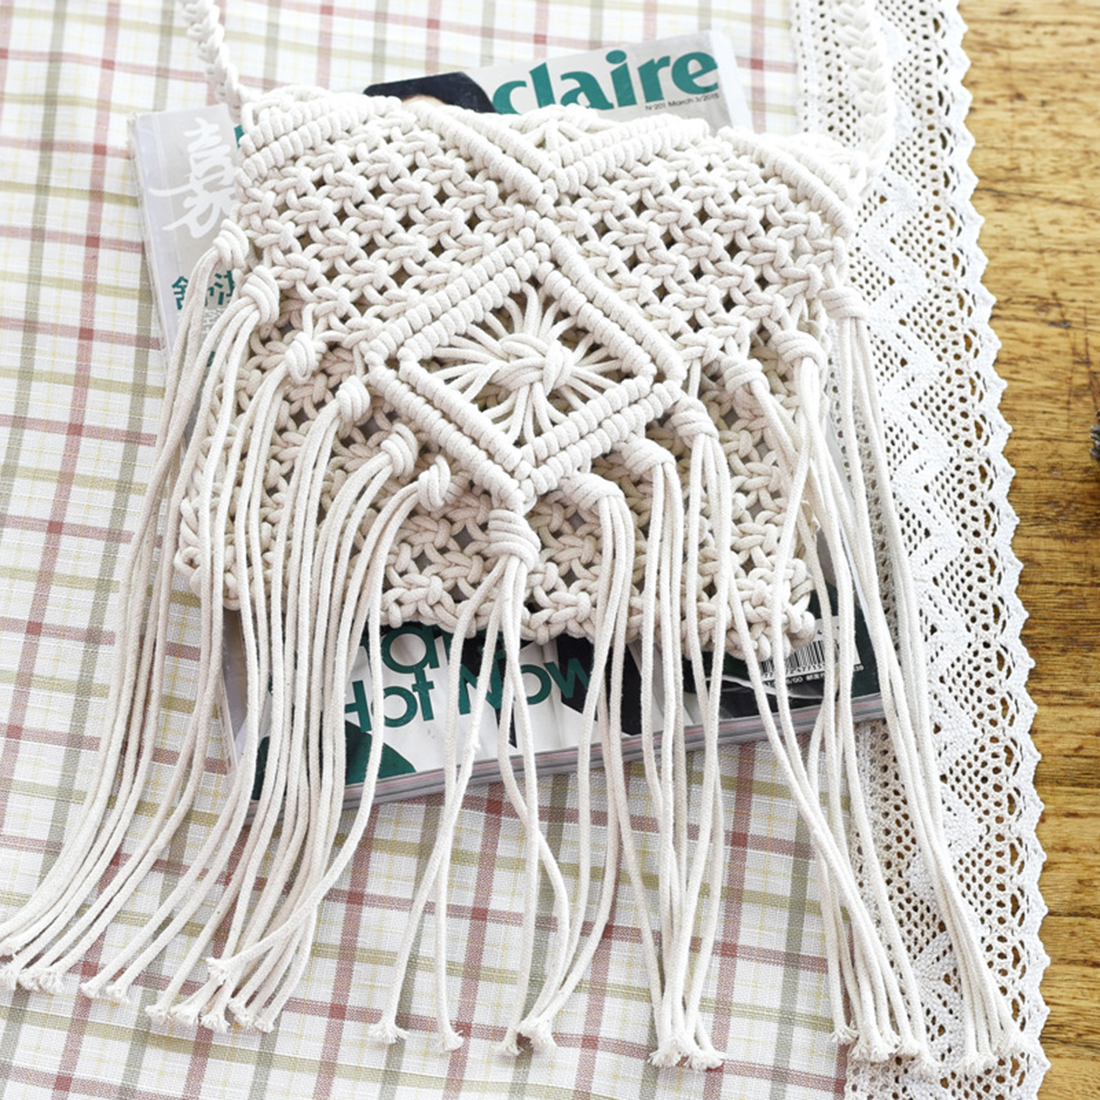 LJL Fringe Tassel Crossbody Shoulder Bag Woven Handmade Boho Beach Travel Handbag for WomenLJL Fringe Tassel Crossbody Shoulder Bag Woven Handmade Boho Beach Travel Handbag for Women